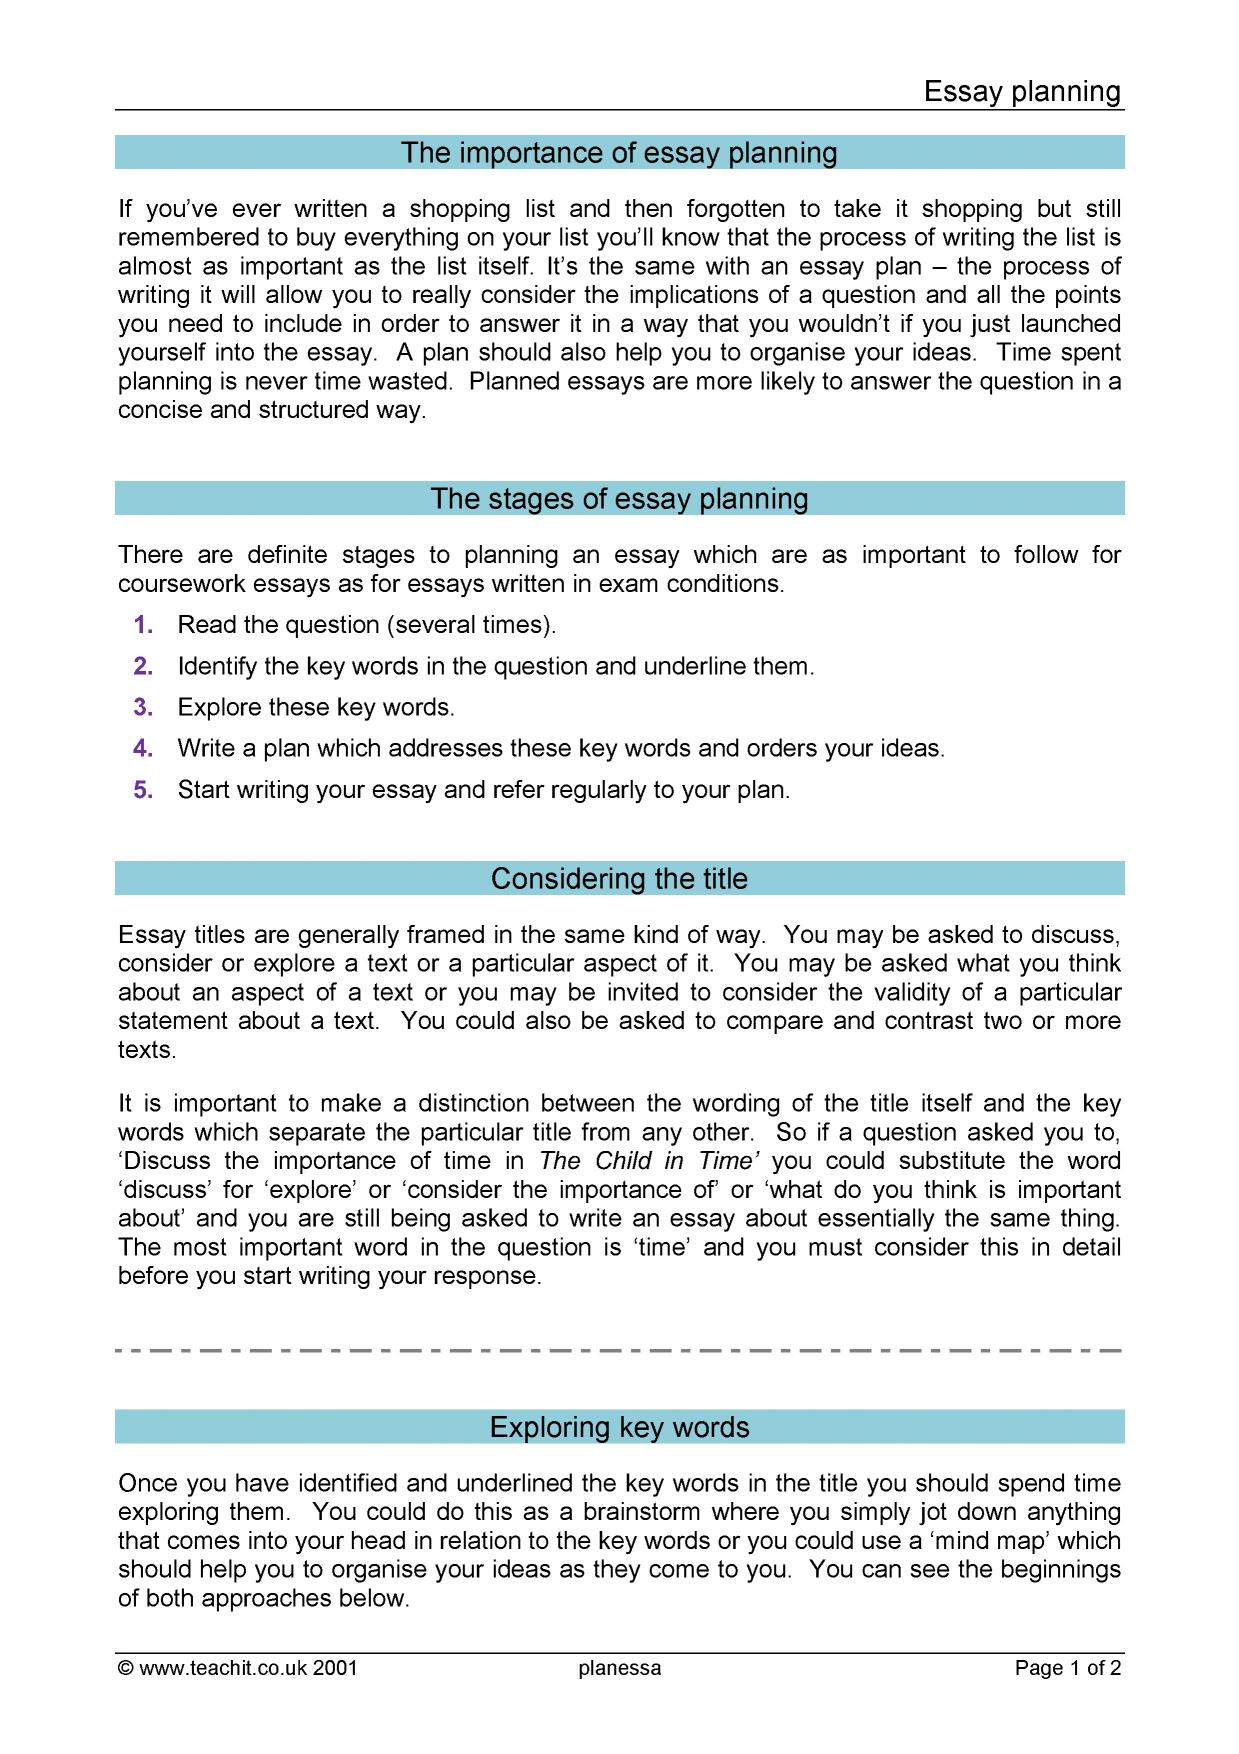 Search Essays In English  Preview Healthy Lifestyle Essay also A Modest Proposal Essay Ks Skills  Essay Writing  Teachit English Topics For English Essays